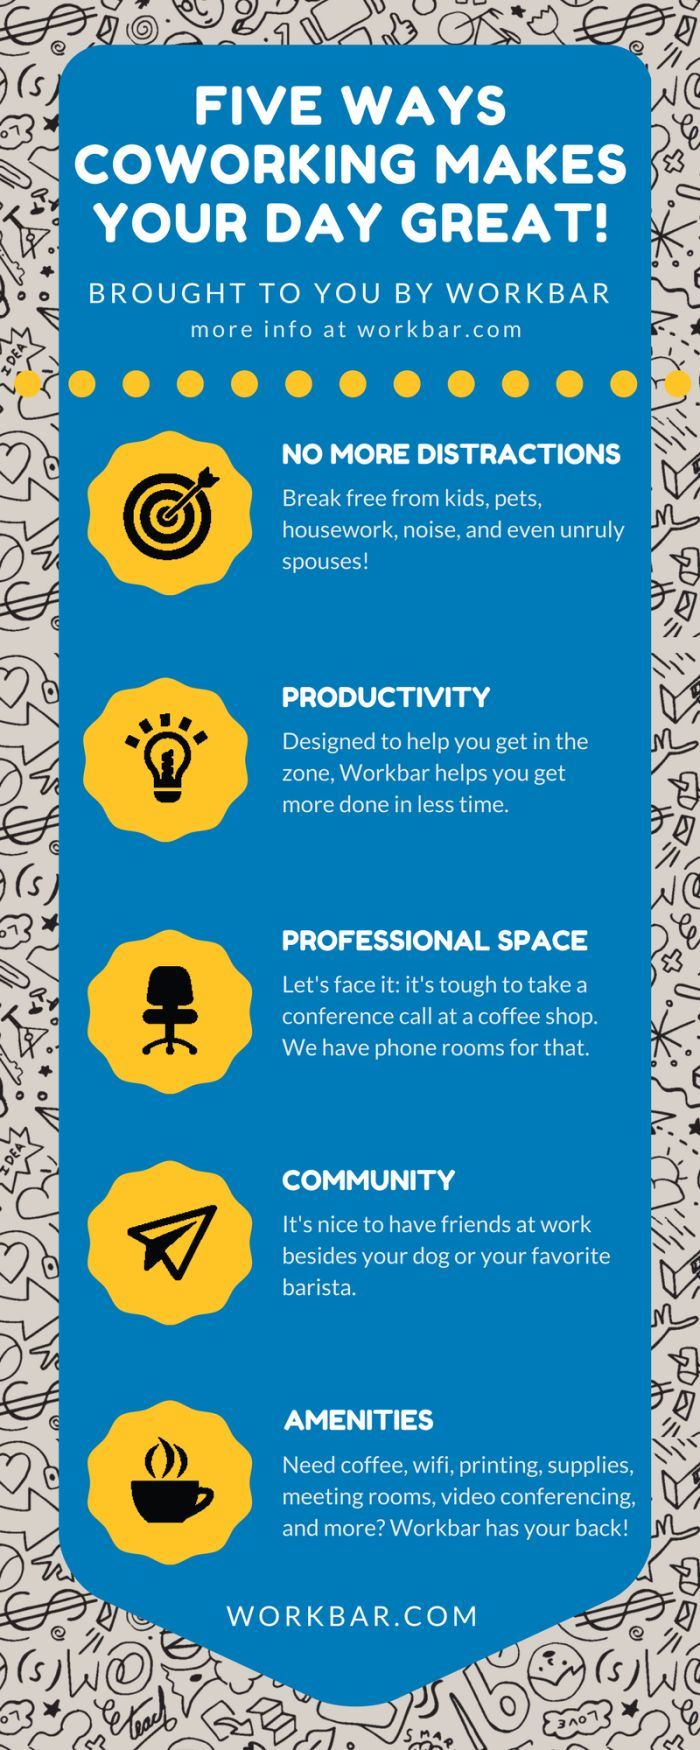 8 best Lifestyle images on Pinterest   Infographic, Infographics and ...